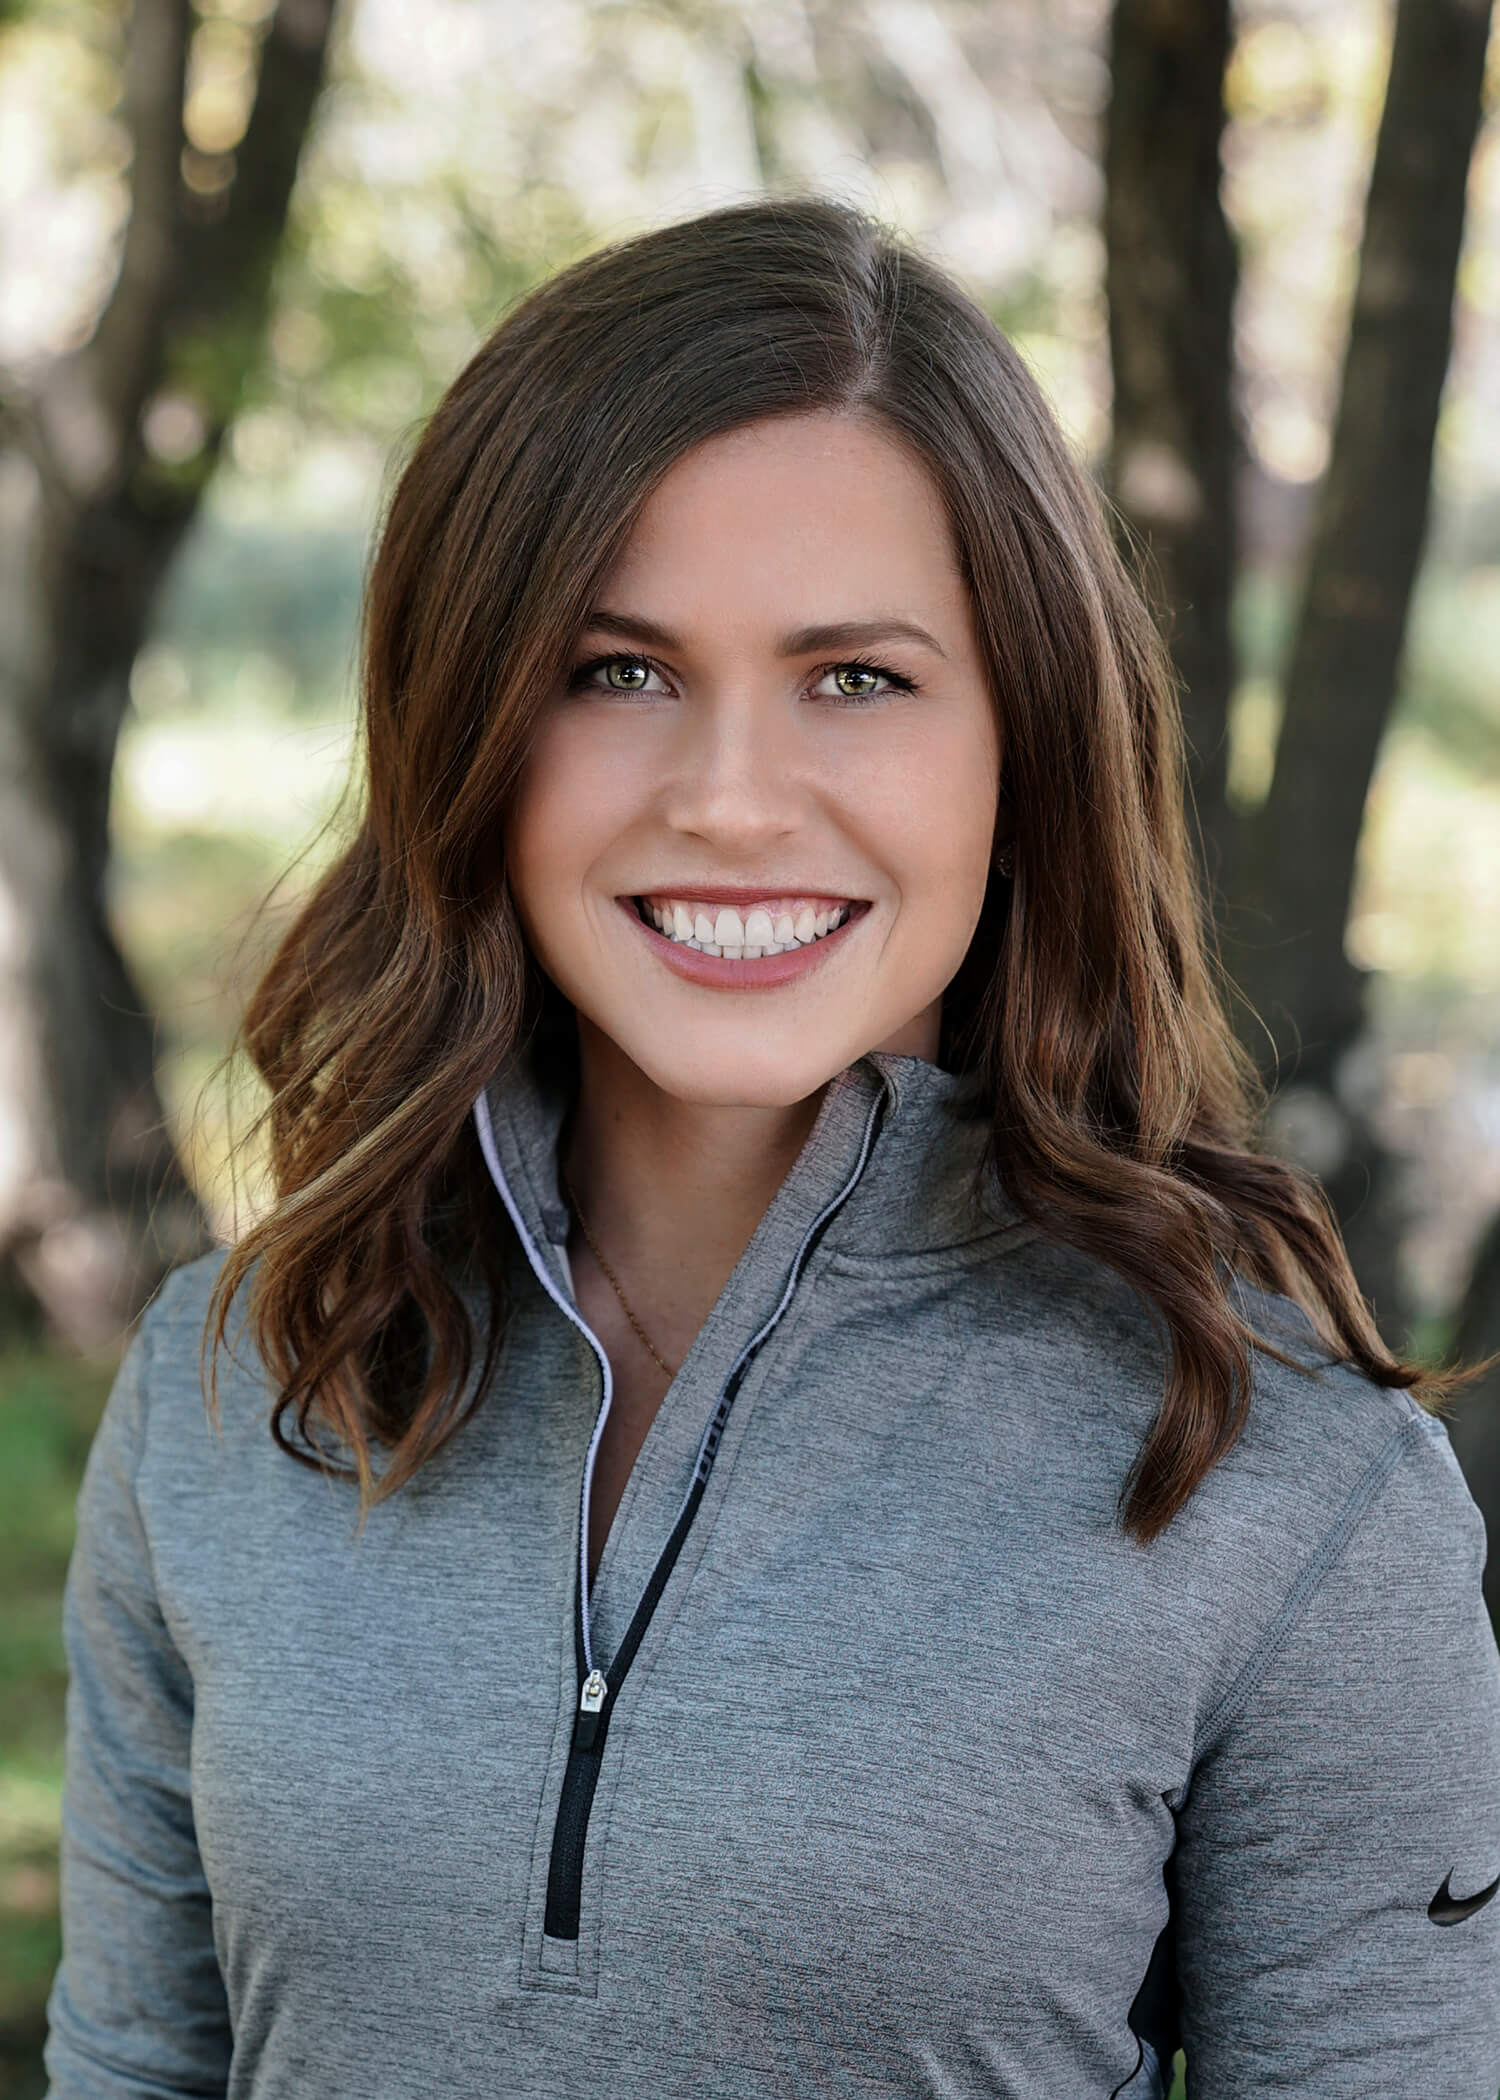 Rocky Mountain Physical Therapy: Meet our Staff: Rocky